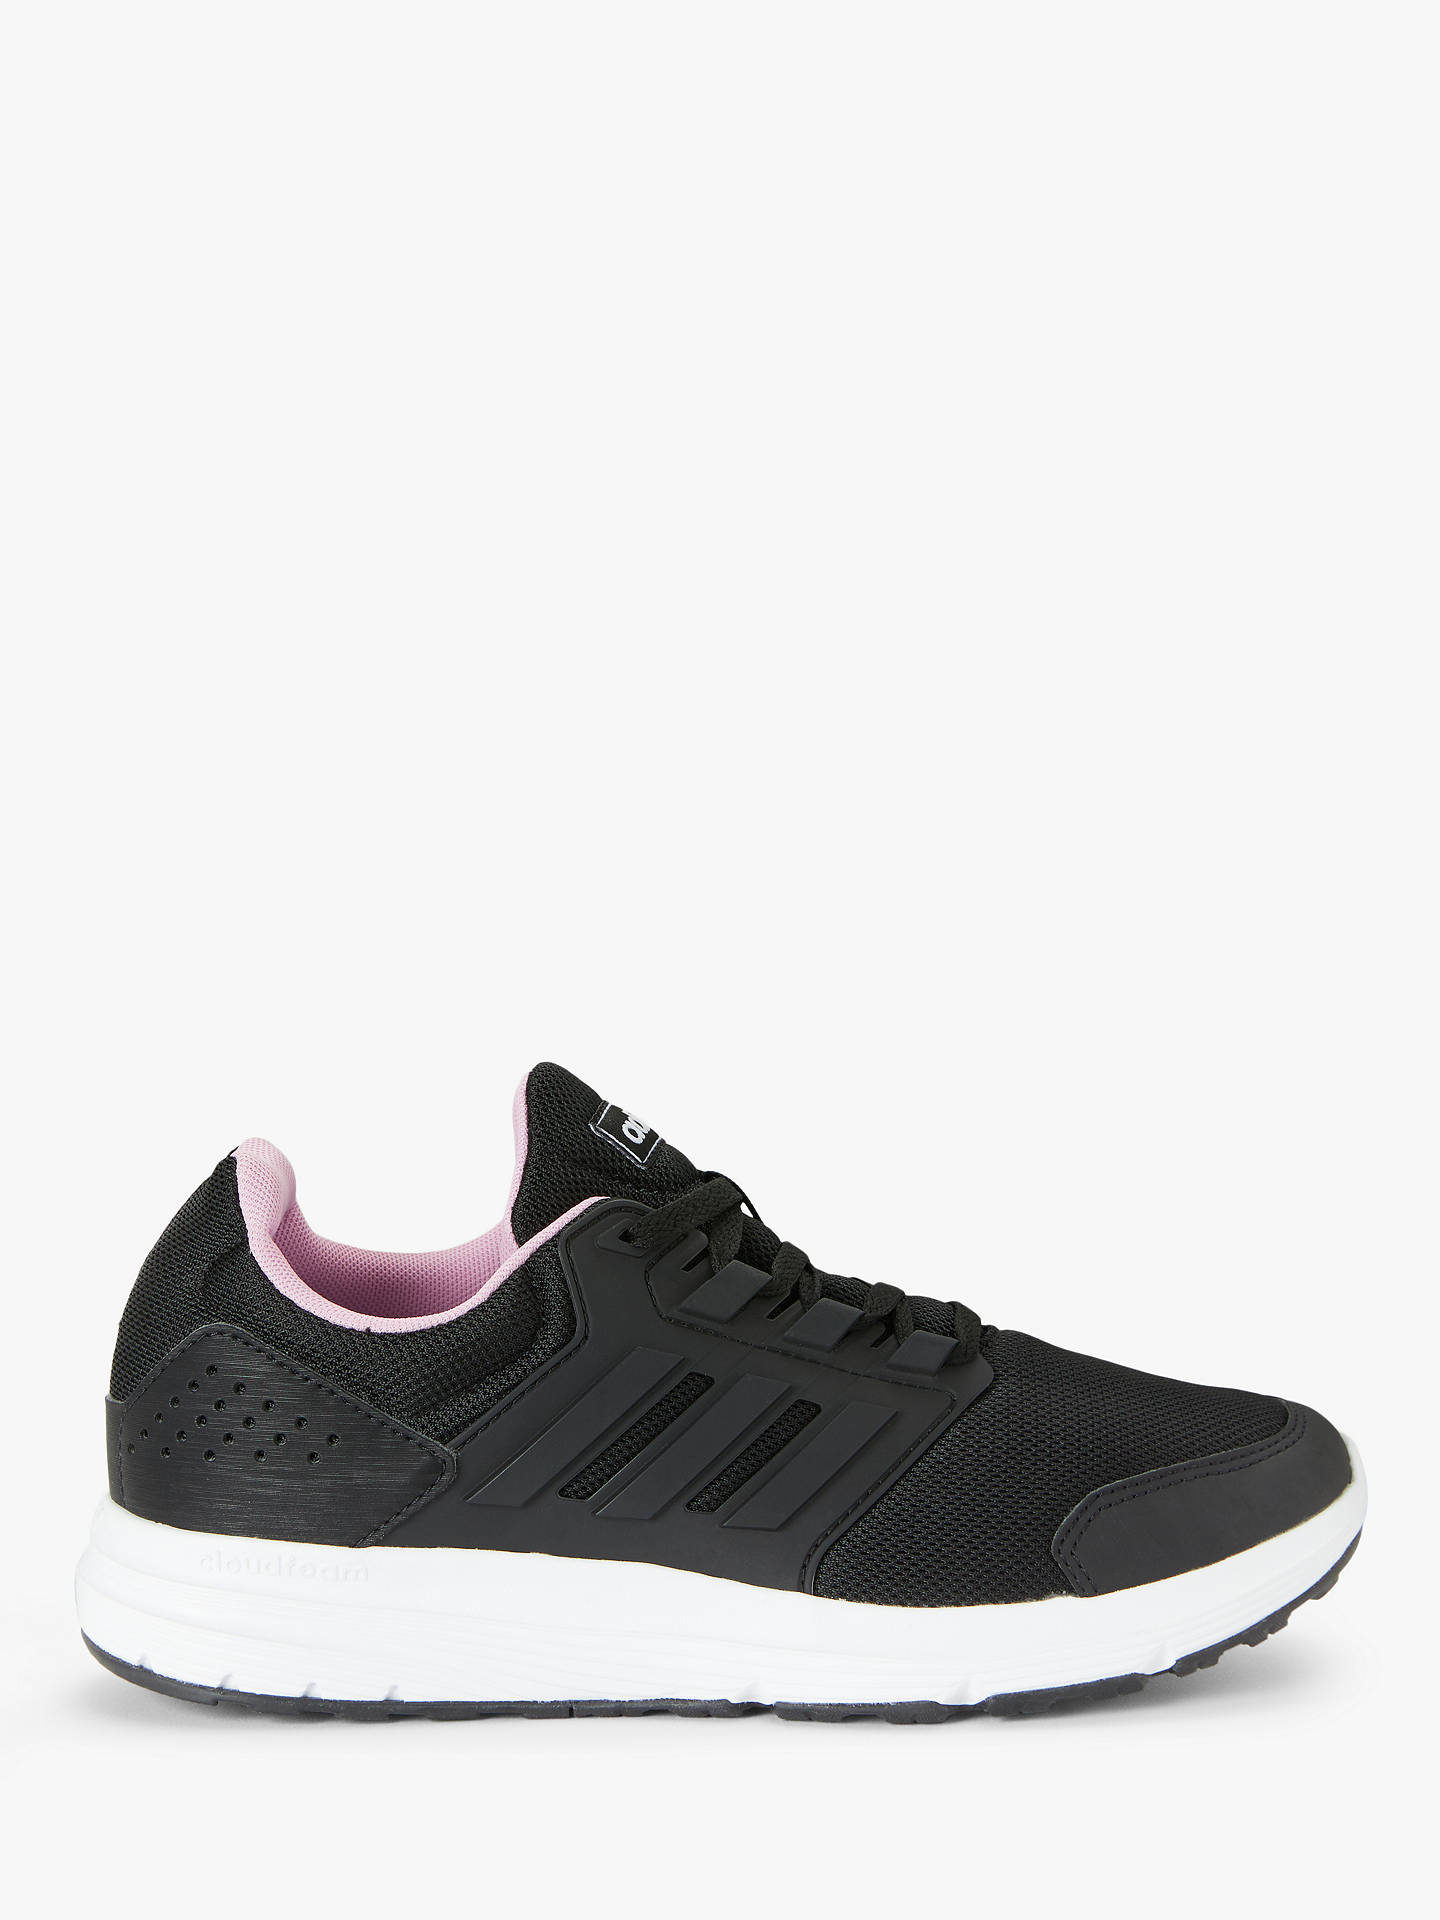 57f91a19524 adidas Galaxy 4 Women's Running Shoes, Core Black/True Pink